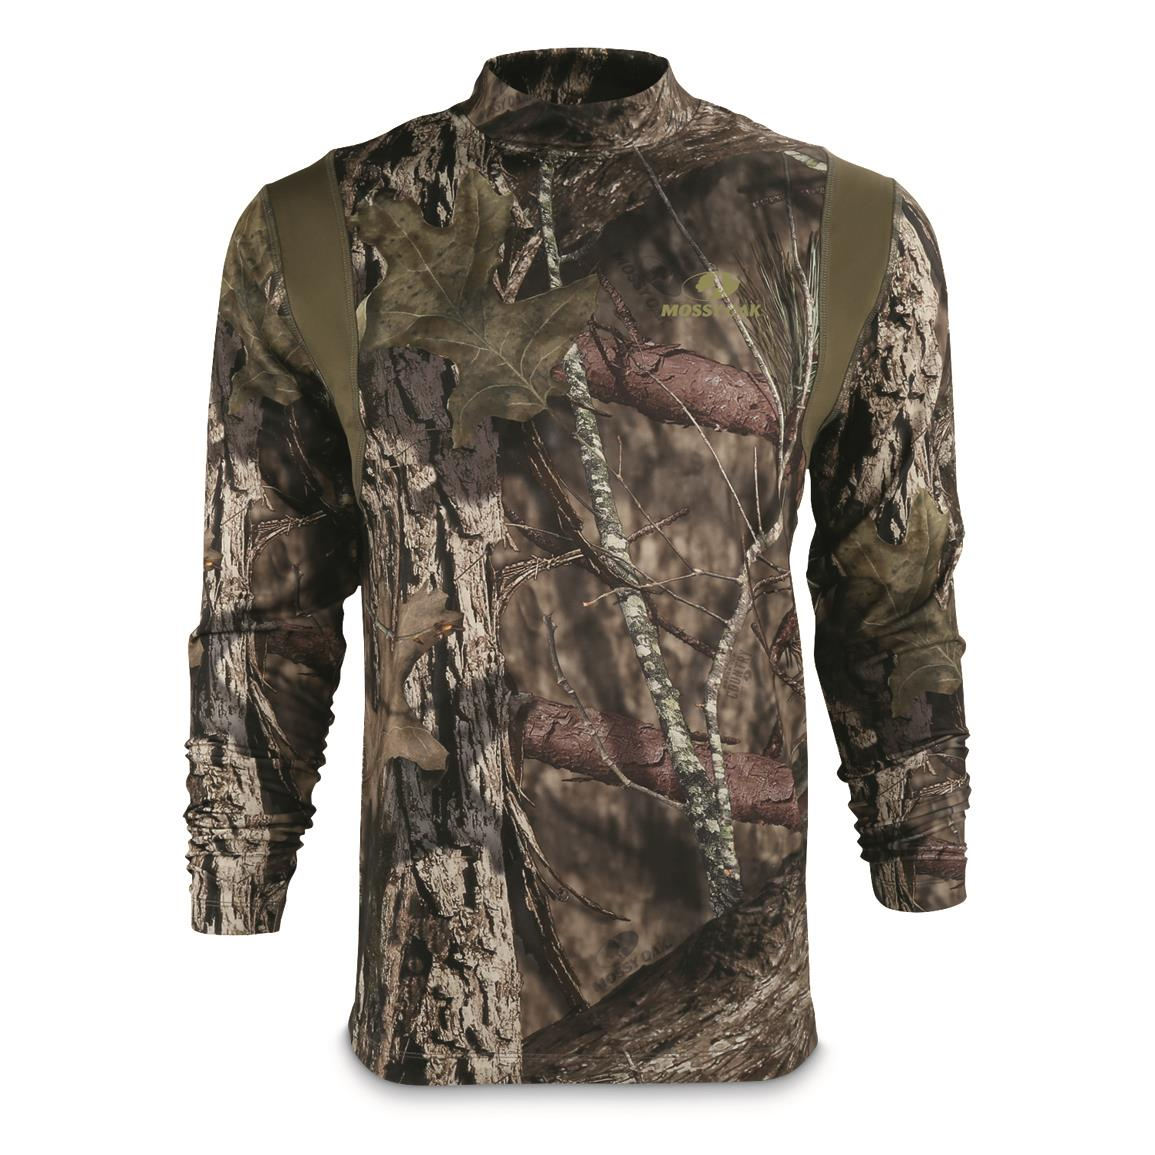 92/8 polyester/spandex , Mossy Oak Break-Up® COUNTRY™